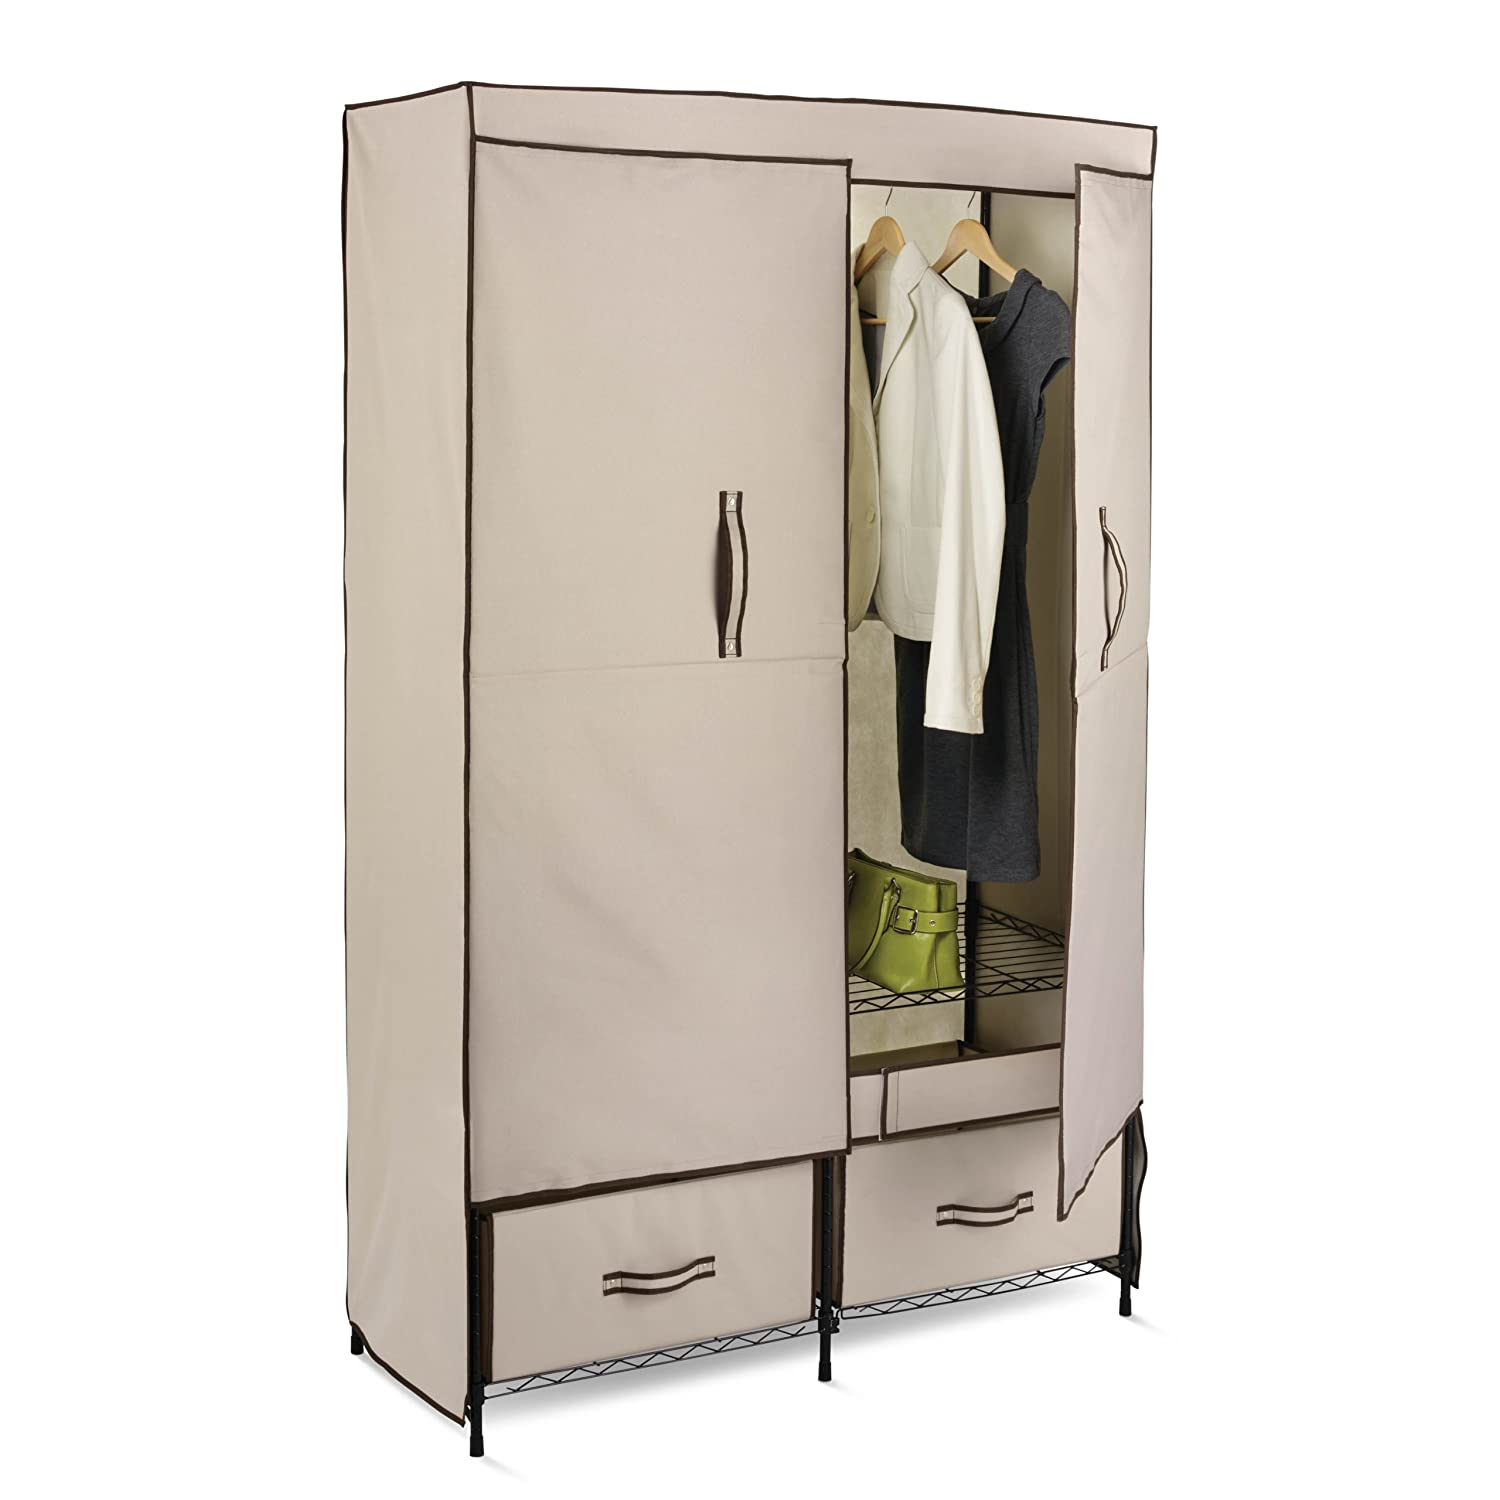 Storage Portable Travel Closet Wardrobe Drawers Door